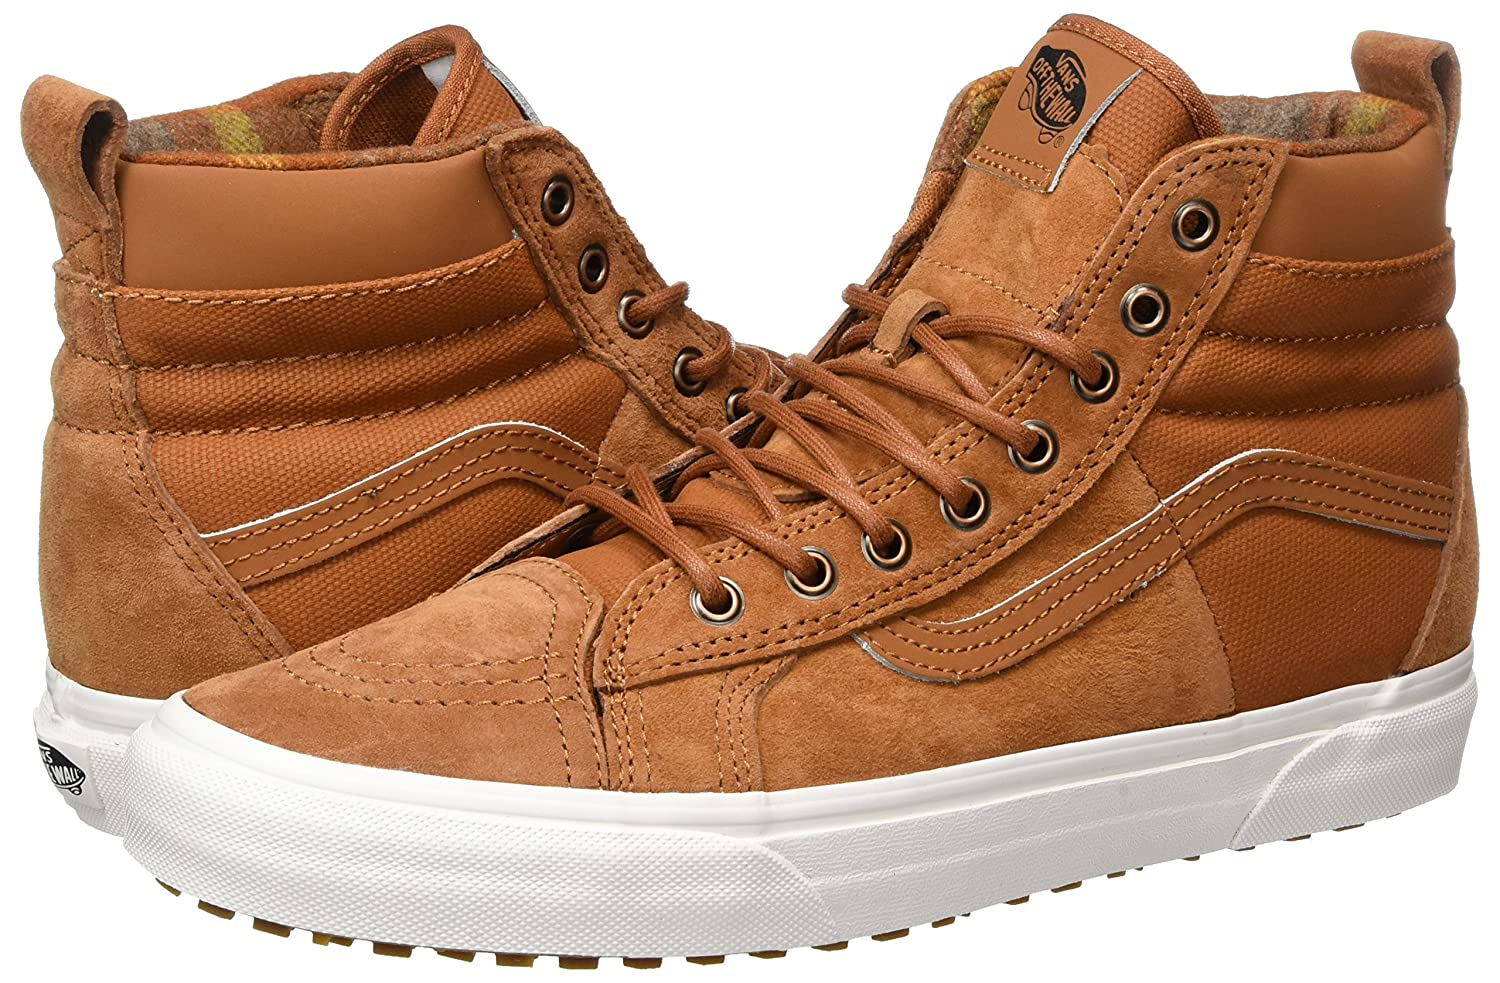 Vans Sk8-Hi Unisex Casual High-Top Skate Shoes, Comfortable and Rubber Durable in Signature Waffle Rubber and Sole B01MYZ1W6O 8.5 Women / 7 Men M US|Glazed Ginger/Flannel cb7023